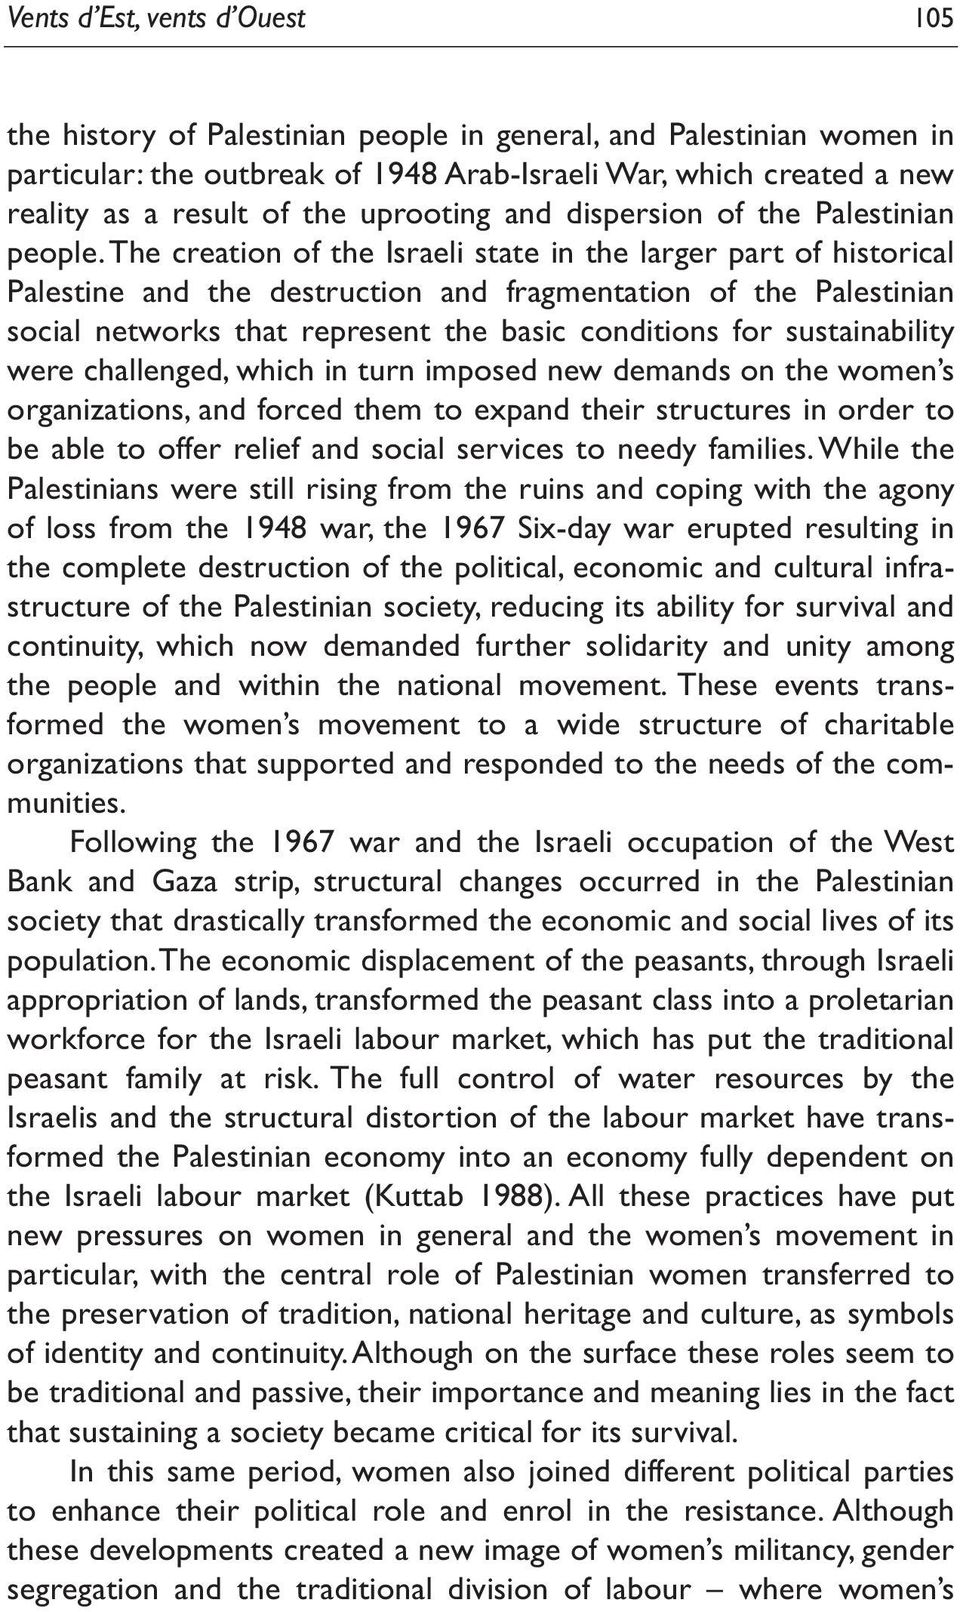 The creation of the Israeli state in the larger part of historical Palestine and the destruction and fragmentation of the Palestinian social networks that represent the basic conditions for